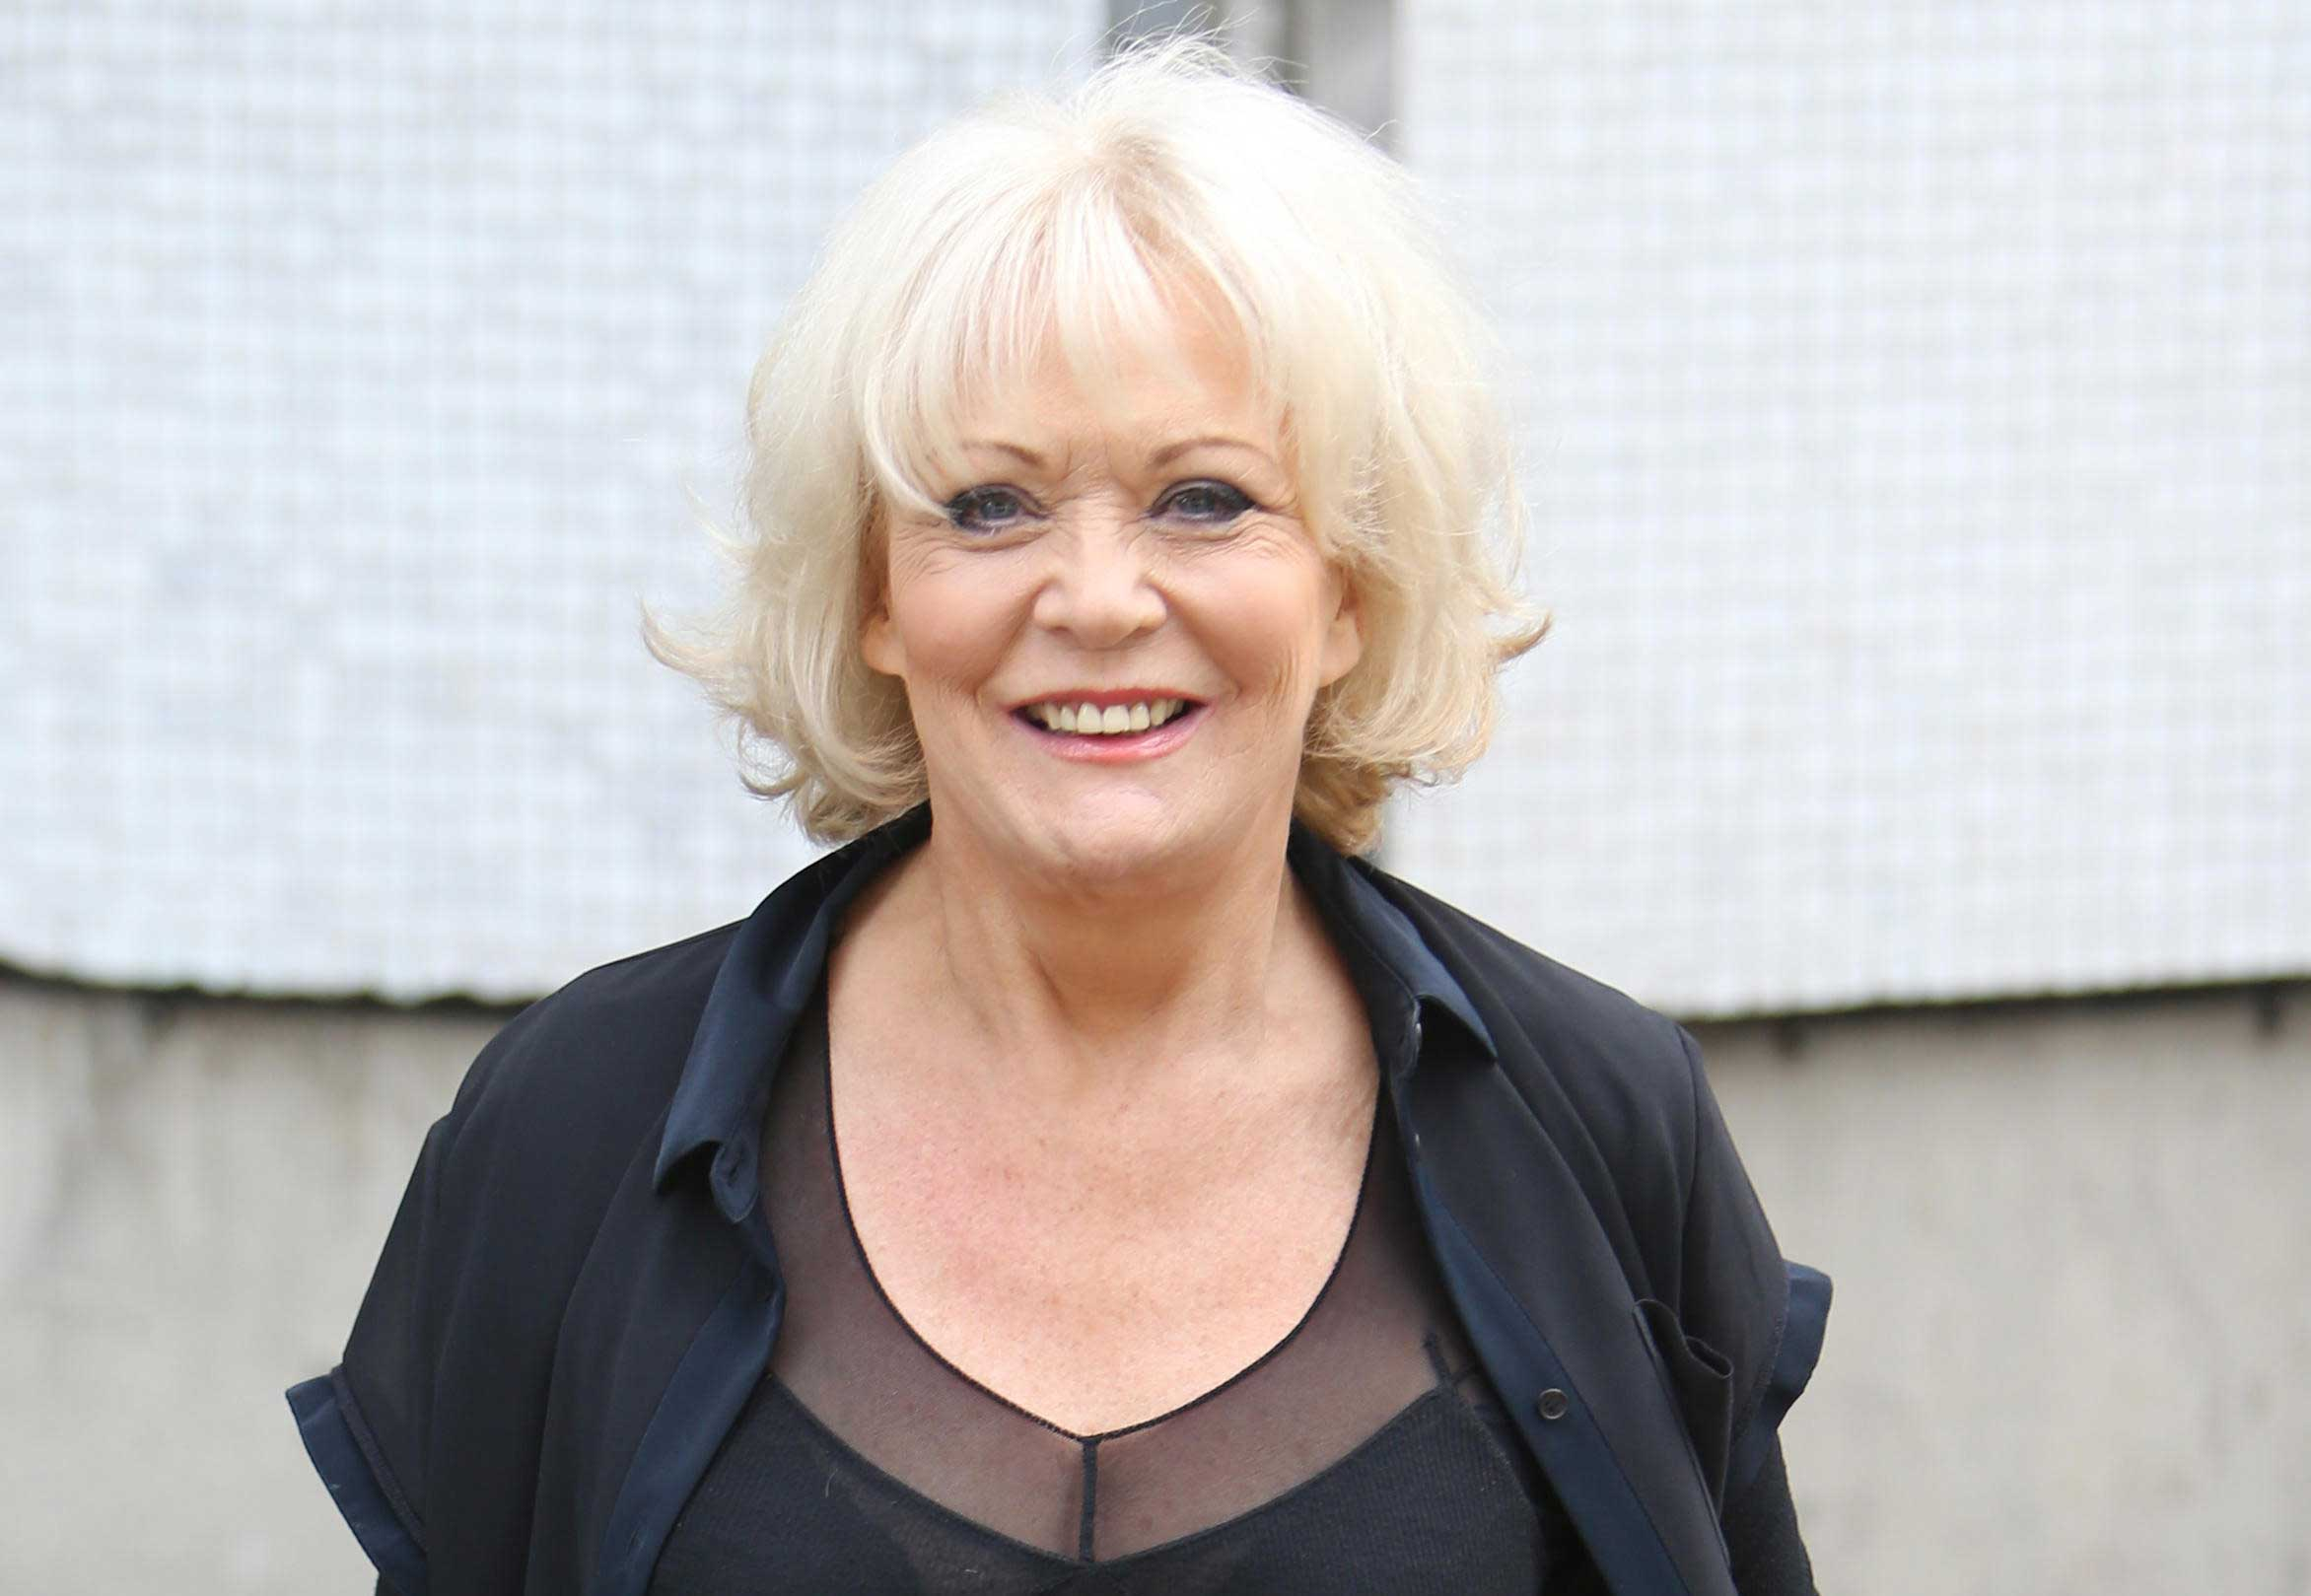 Sherrie Hewson nudes (72 photo), Sexy, Paparazzi, Twitter, lingerie 2017